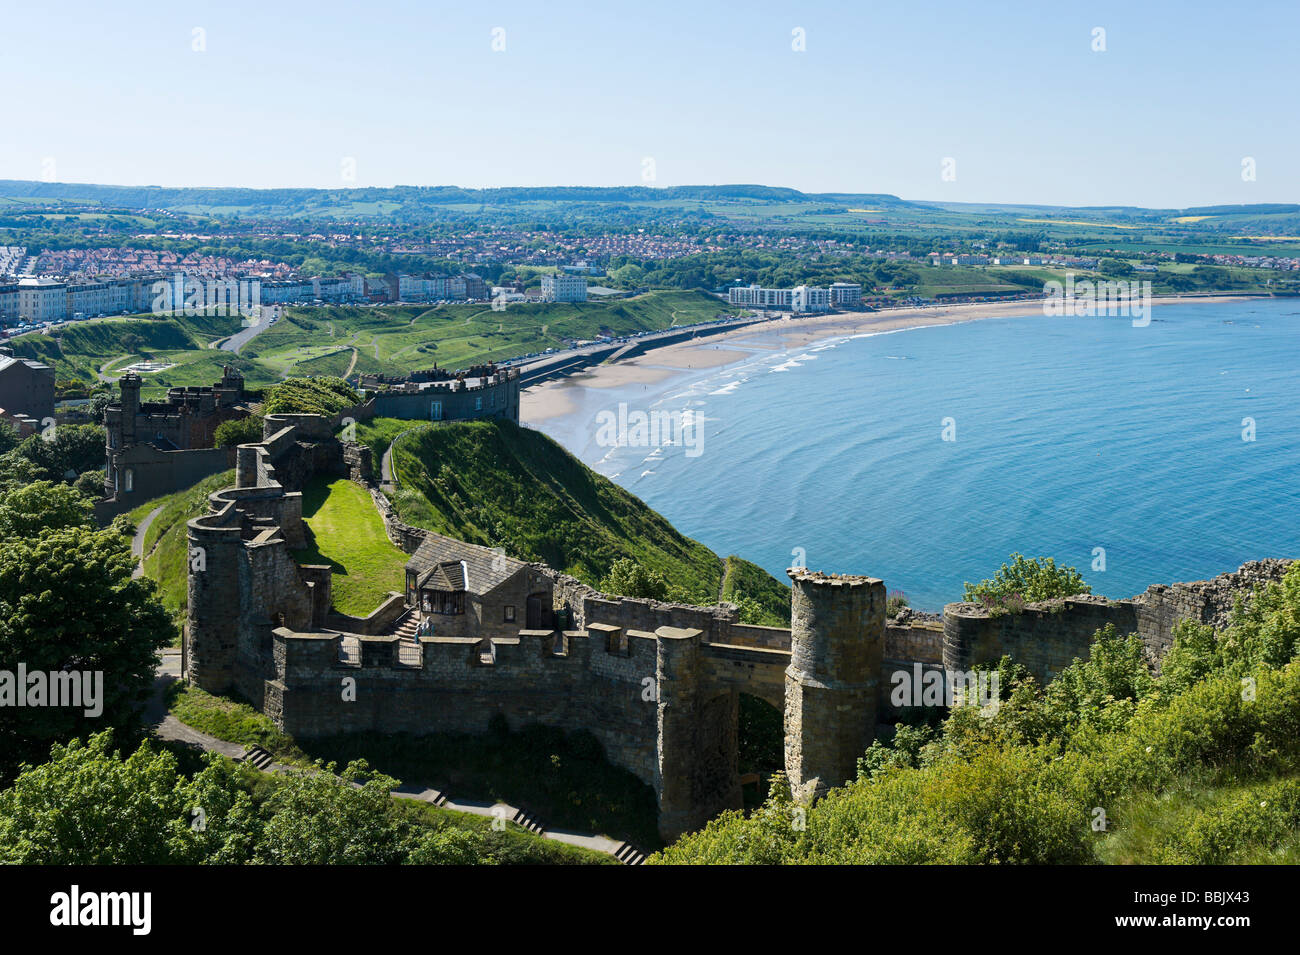 View over North Bay from inside the Castle, Scarborough, East Coast, North Yorkshire, England - Stock Image